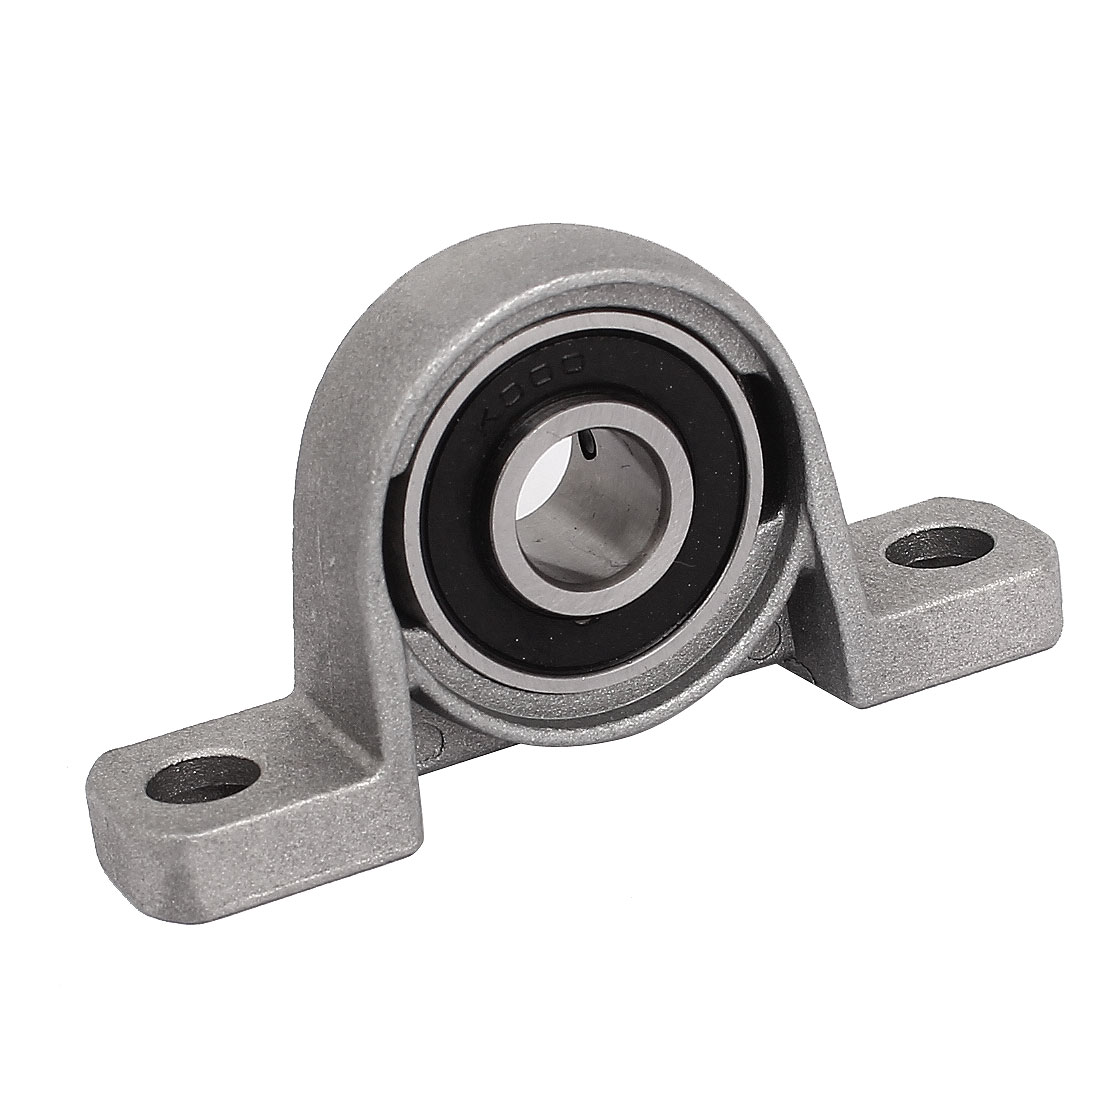 KP000 10mm Bore Self-aligning Vertical Mounted Flange Bearing Pillow Block